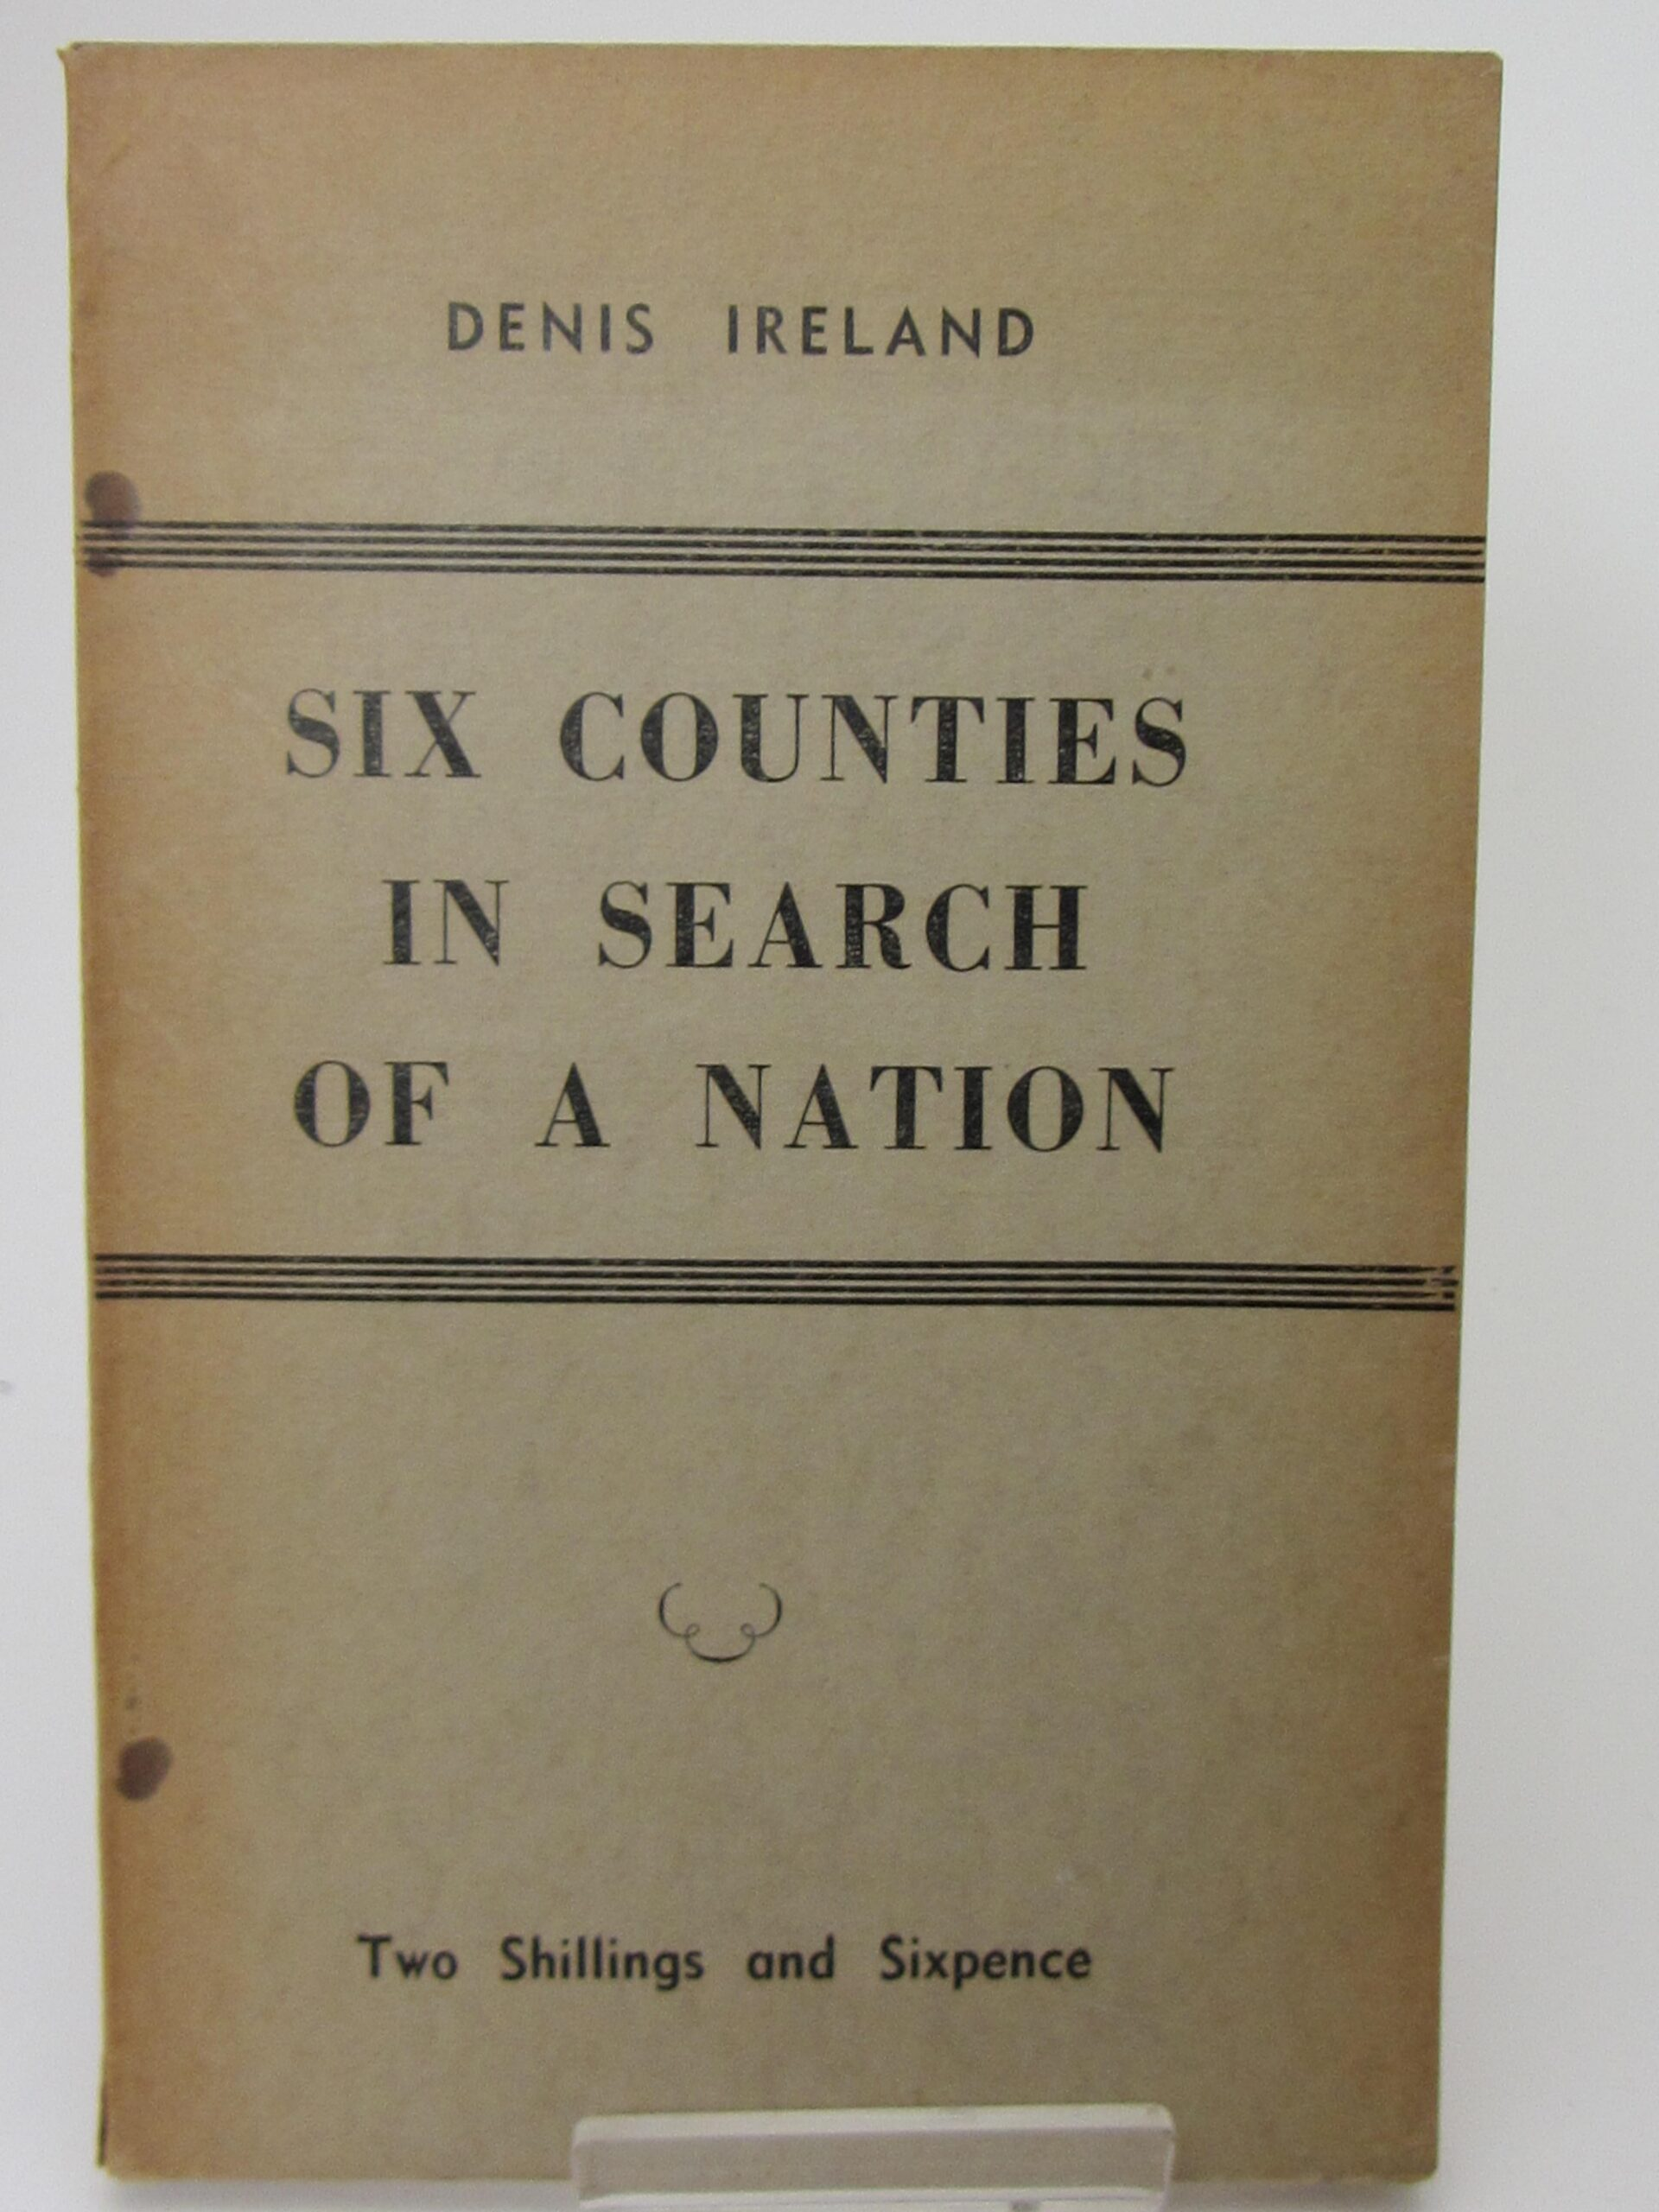 Six Counties In Search Of A Nation. Essays on Partition 1942-1946 by Denis Ireland